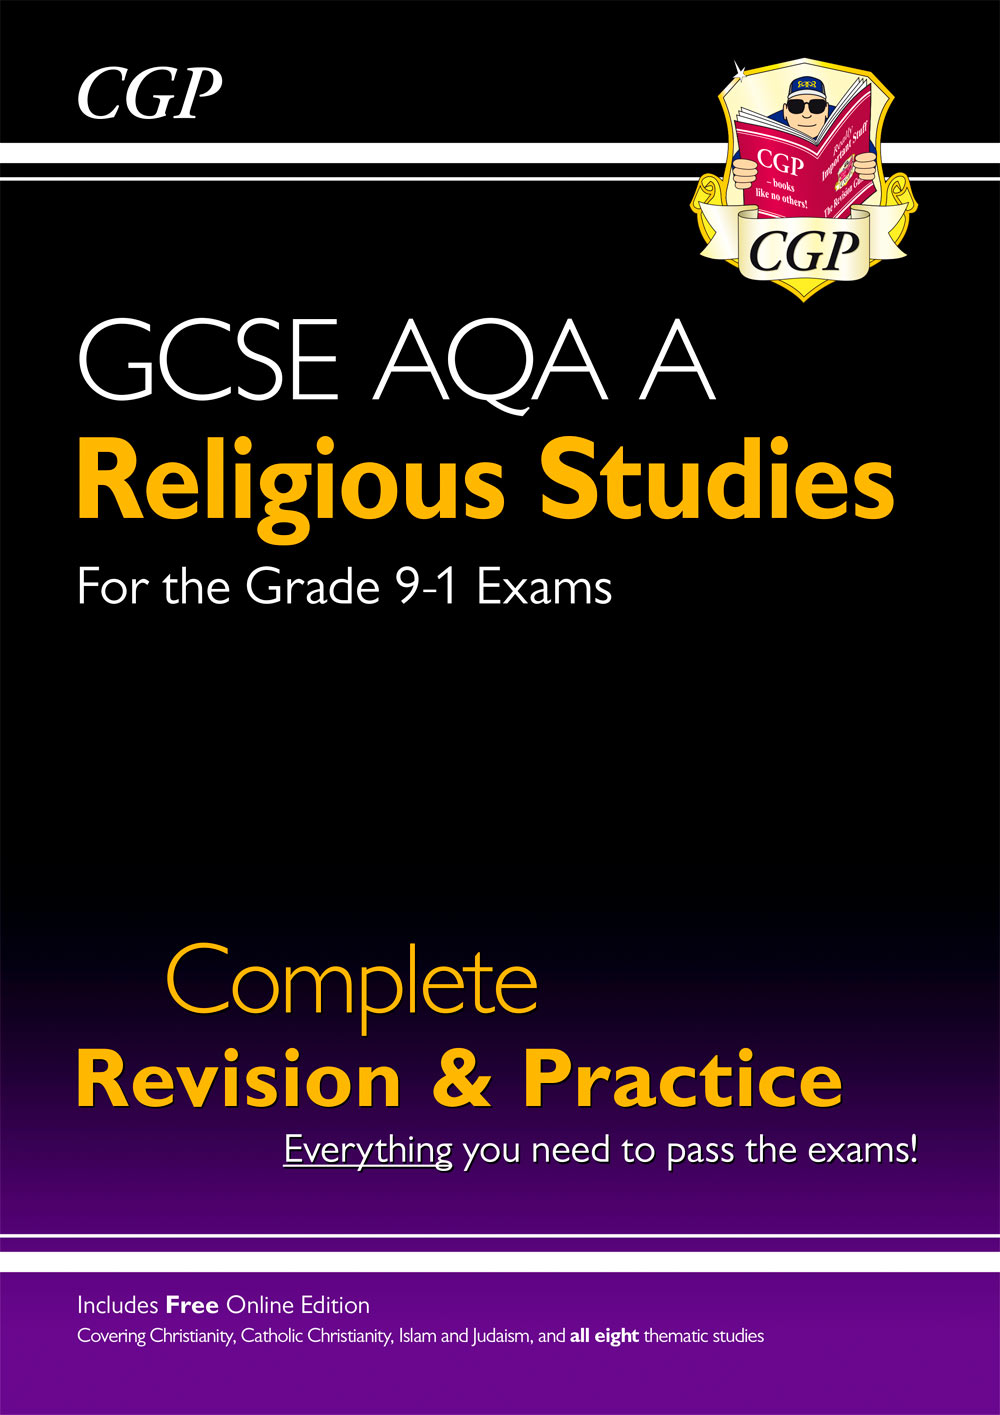 RAS41 - Grade 9-1 GCSE Religious Studies: AQA A Complete Revision & Practice with Online Edition